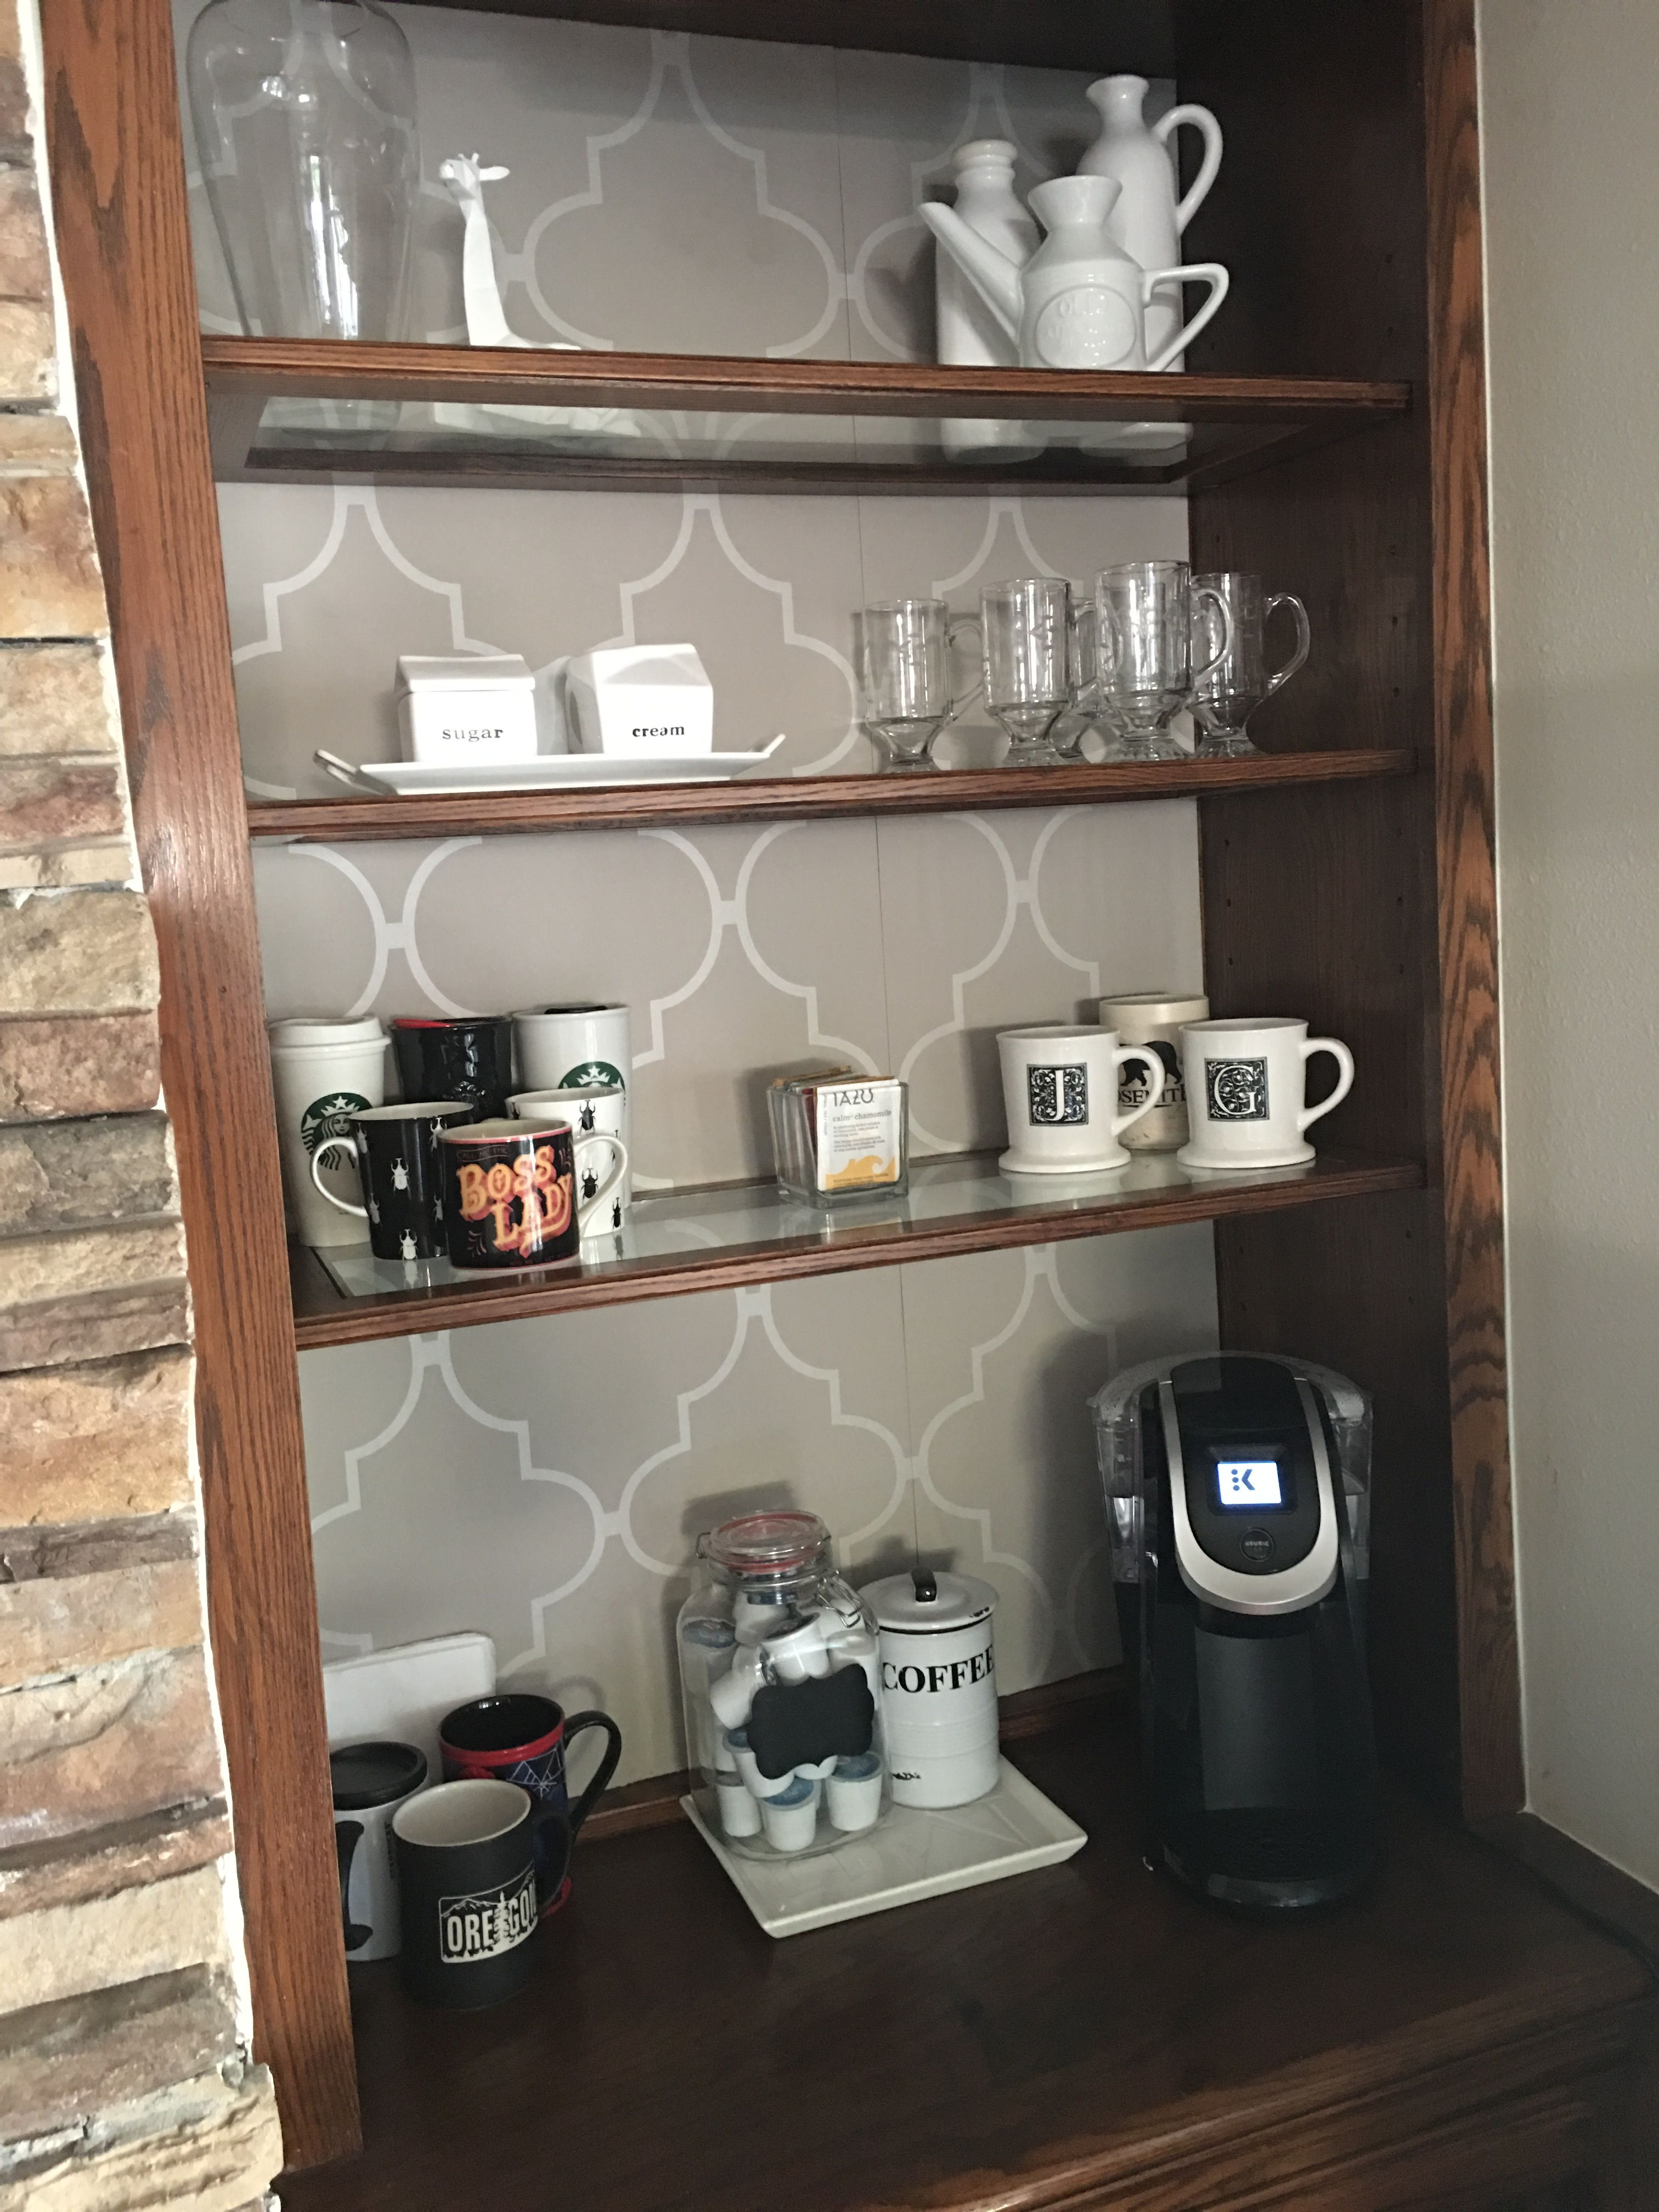 My home coffee bar I created in hutch by taking off doors ❤️❤️